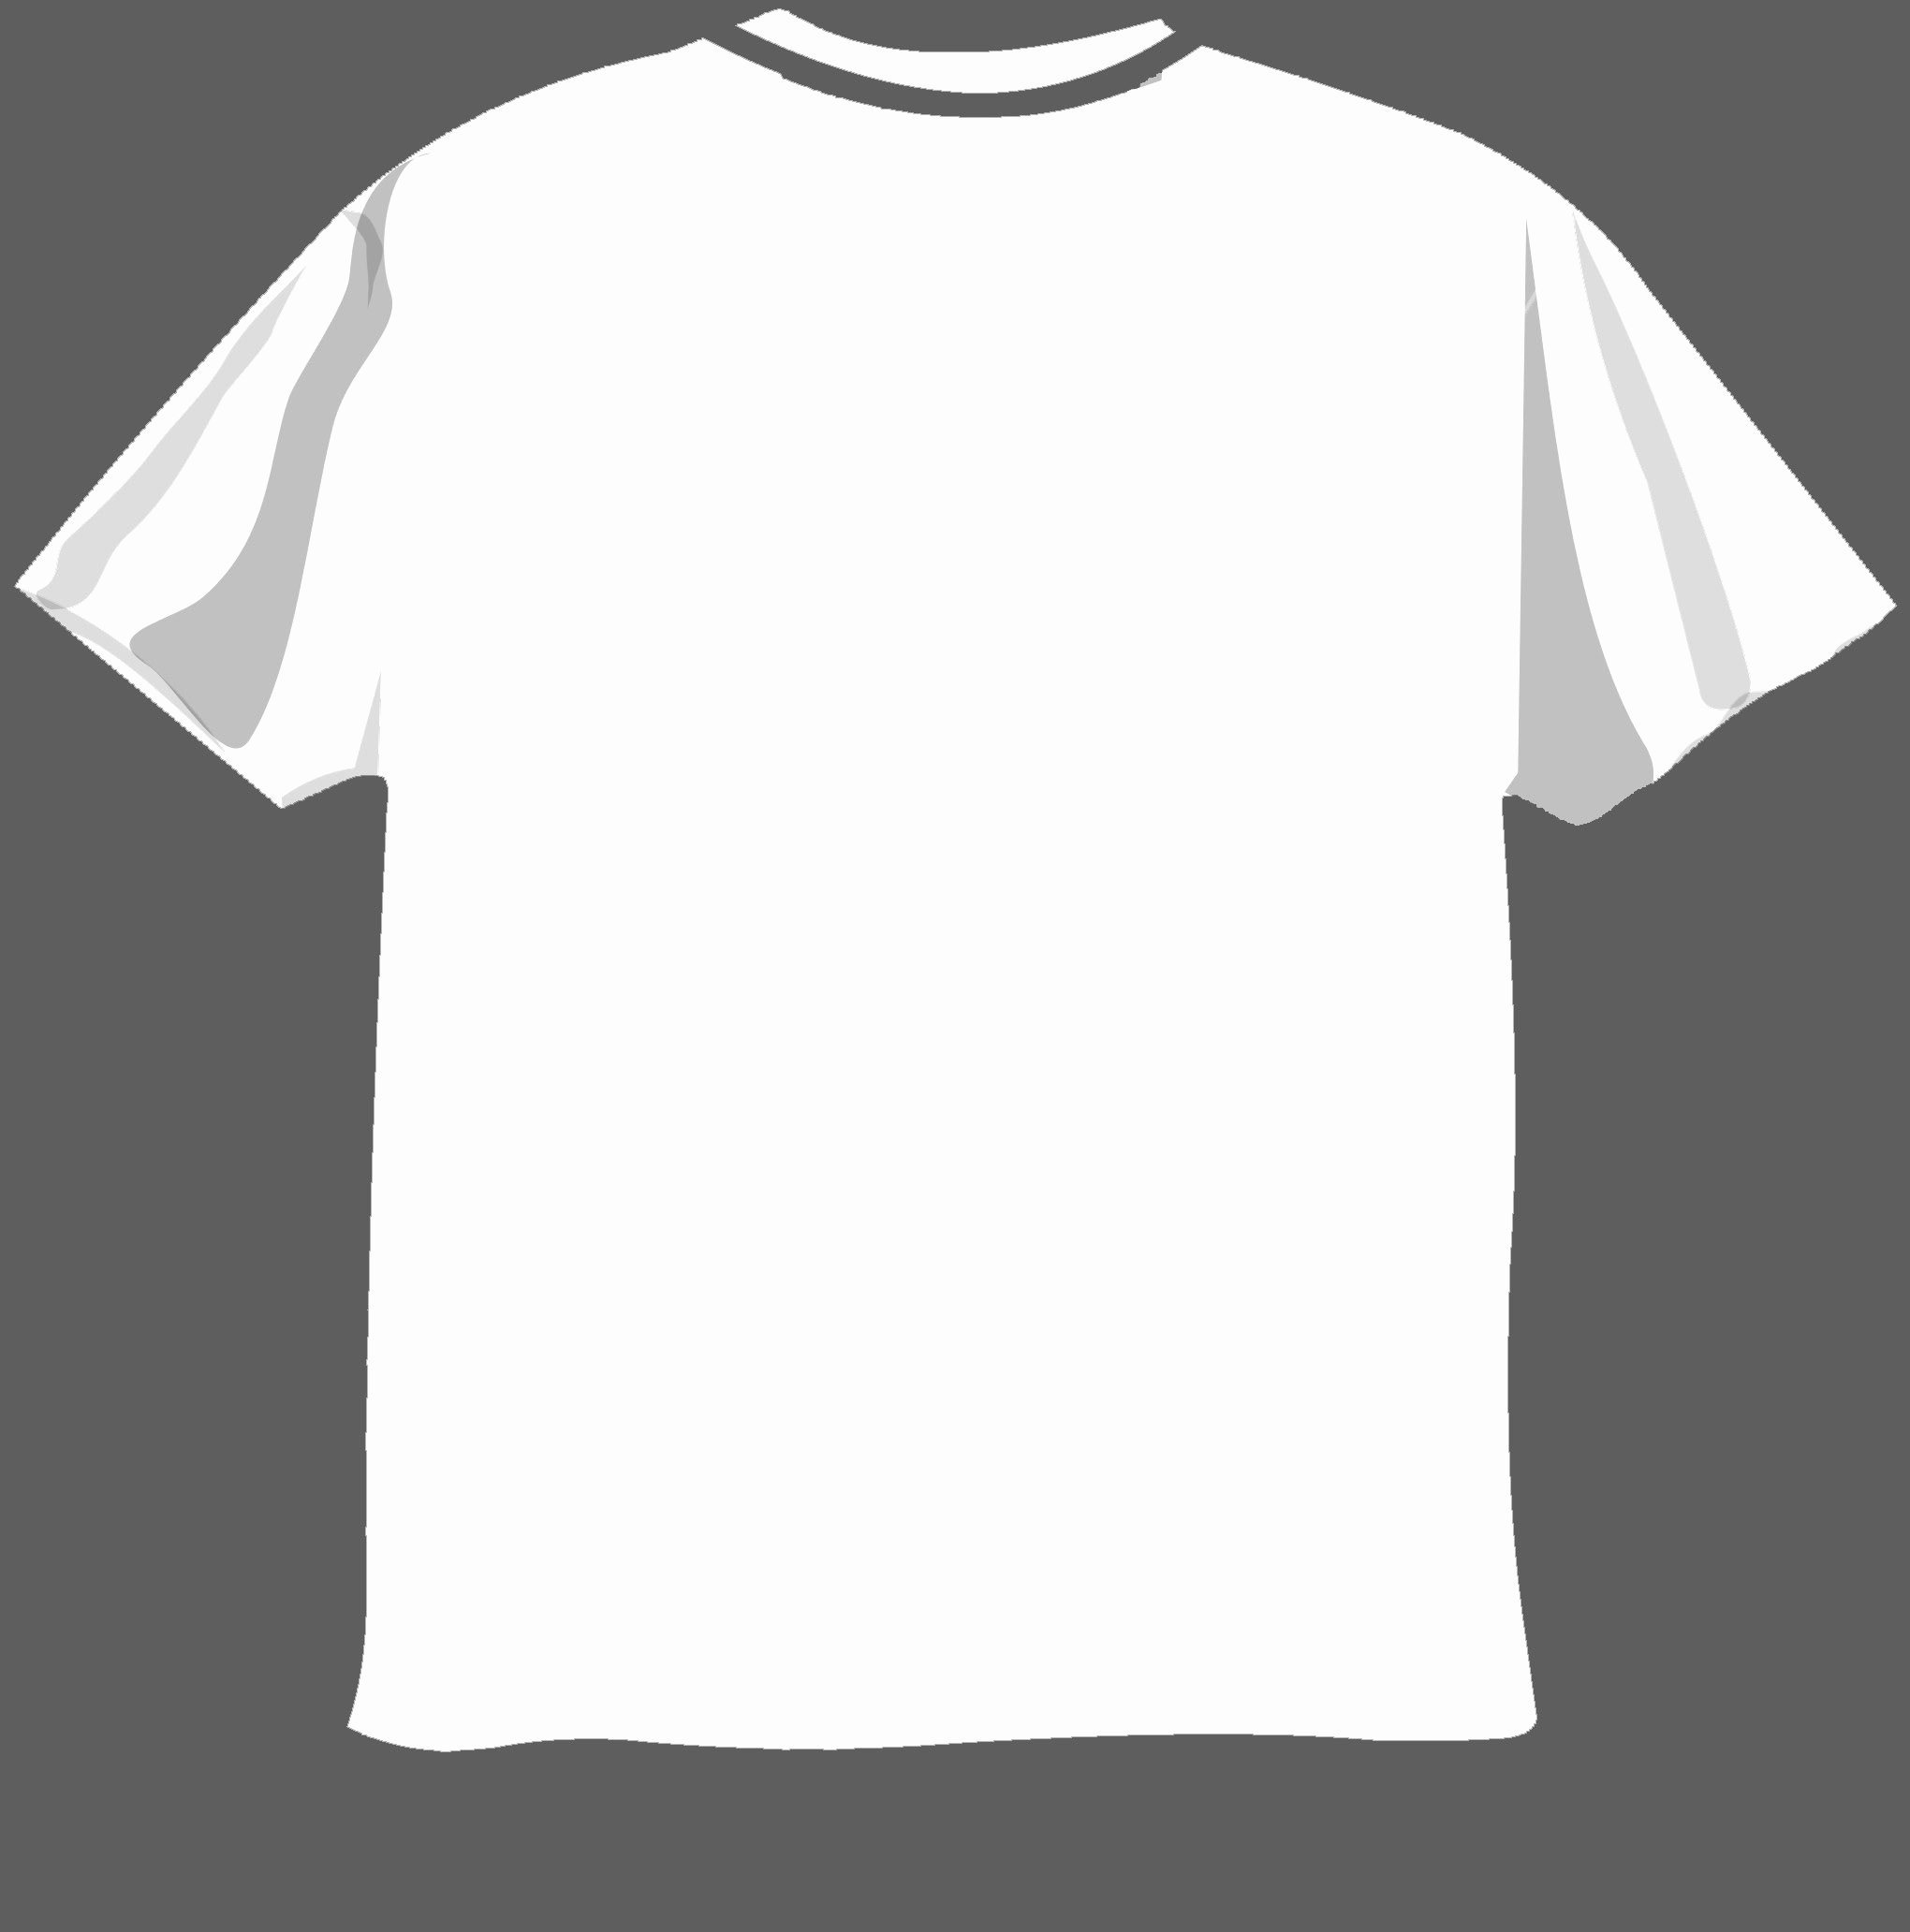 T Shirt Template for Photoshop Luxury Photoshop Template T Shirt Wavy1